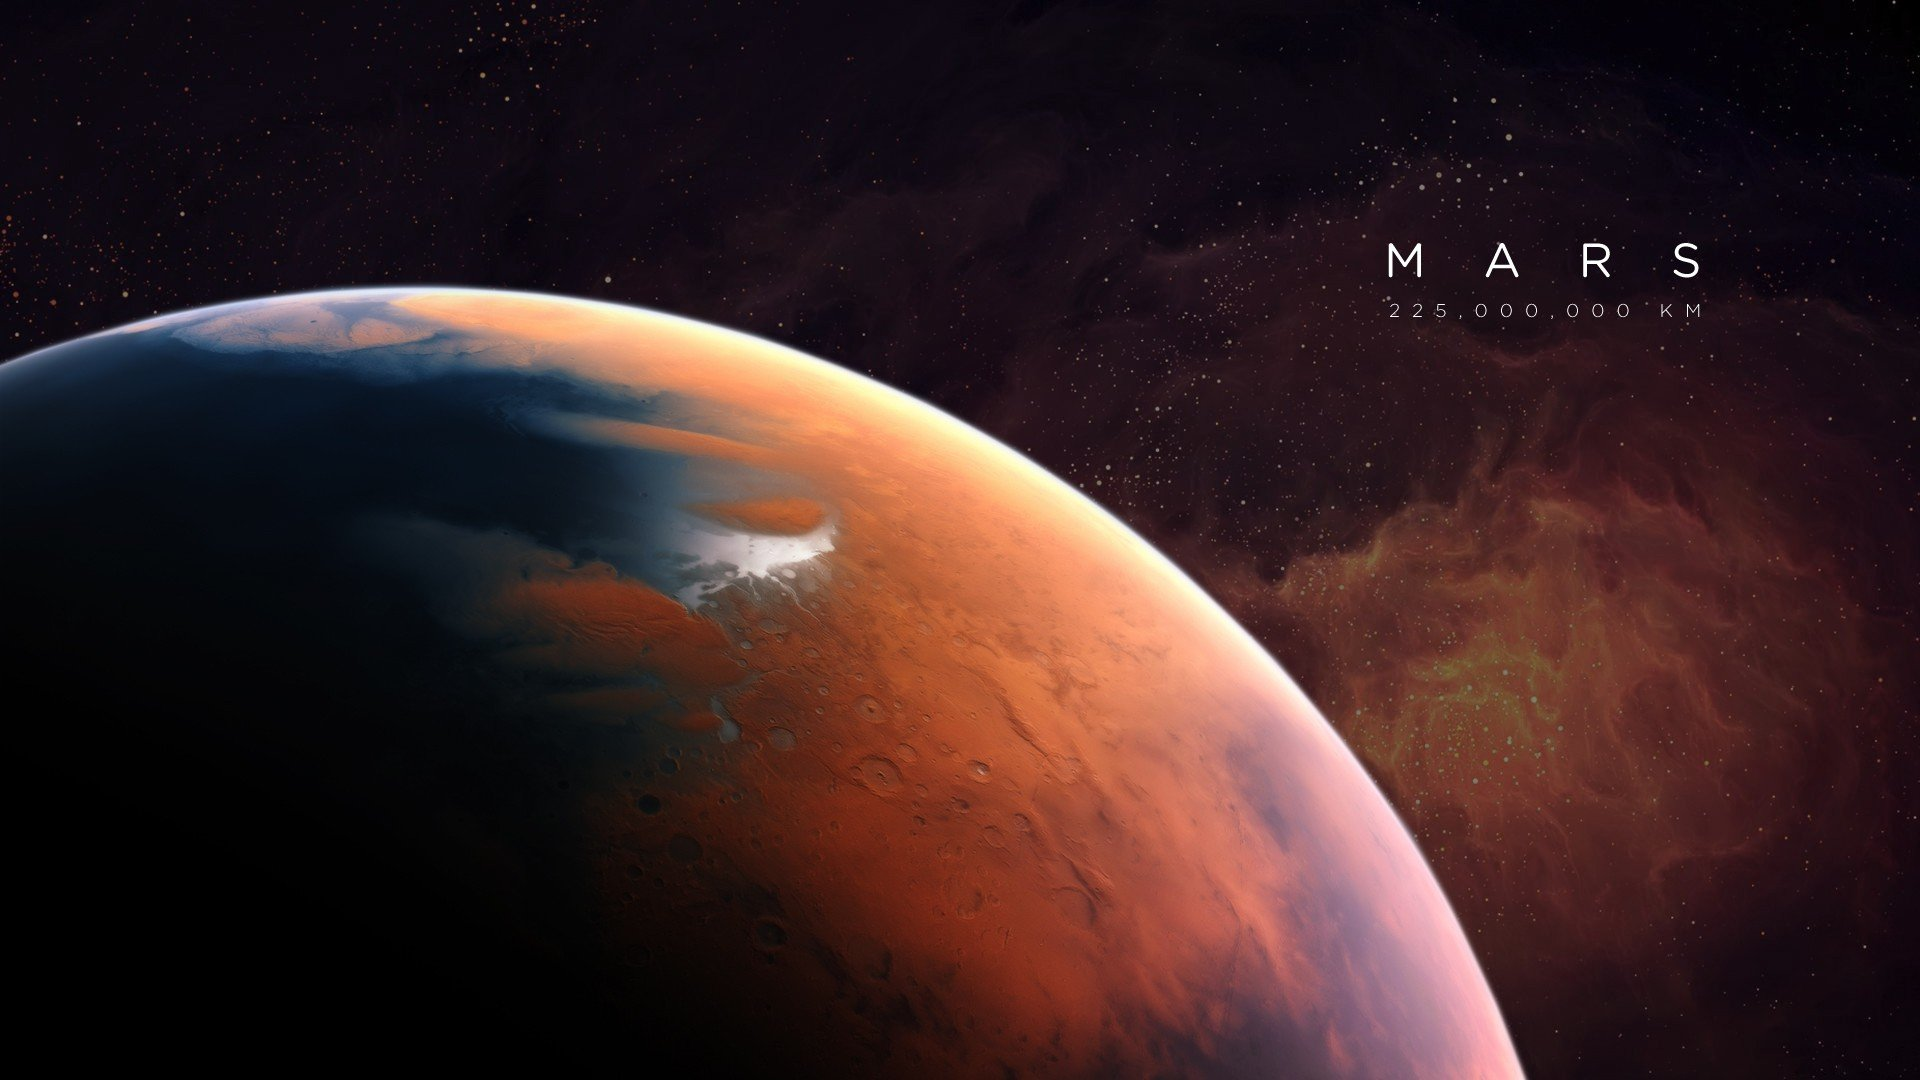 marte wallpaper,atmosphere,outer space,planet,astronomical object,universe